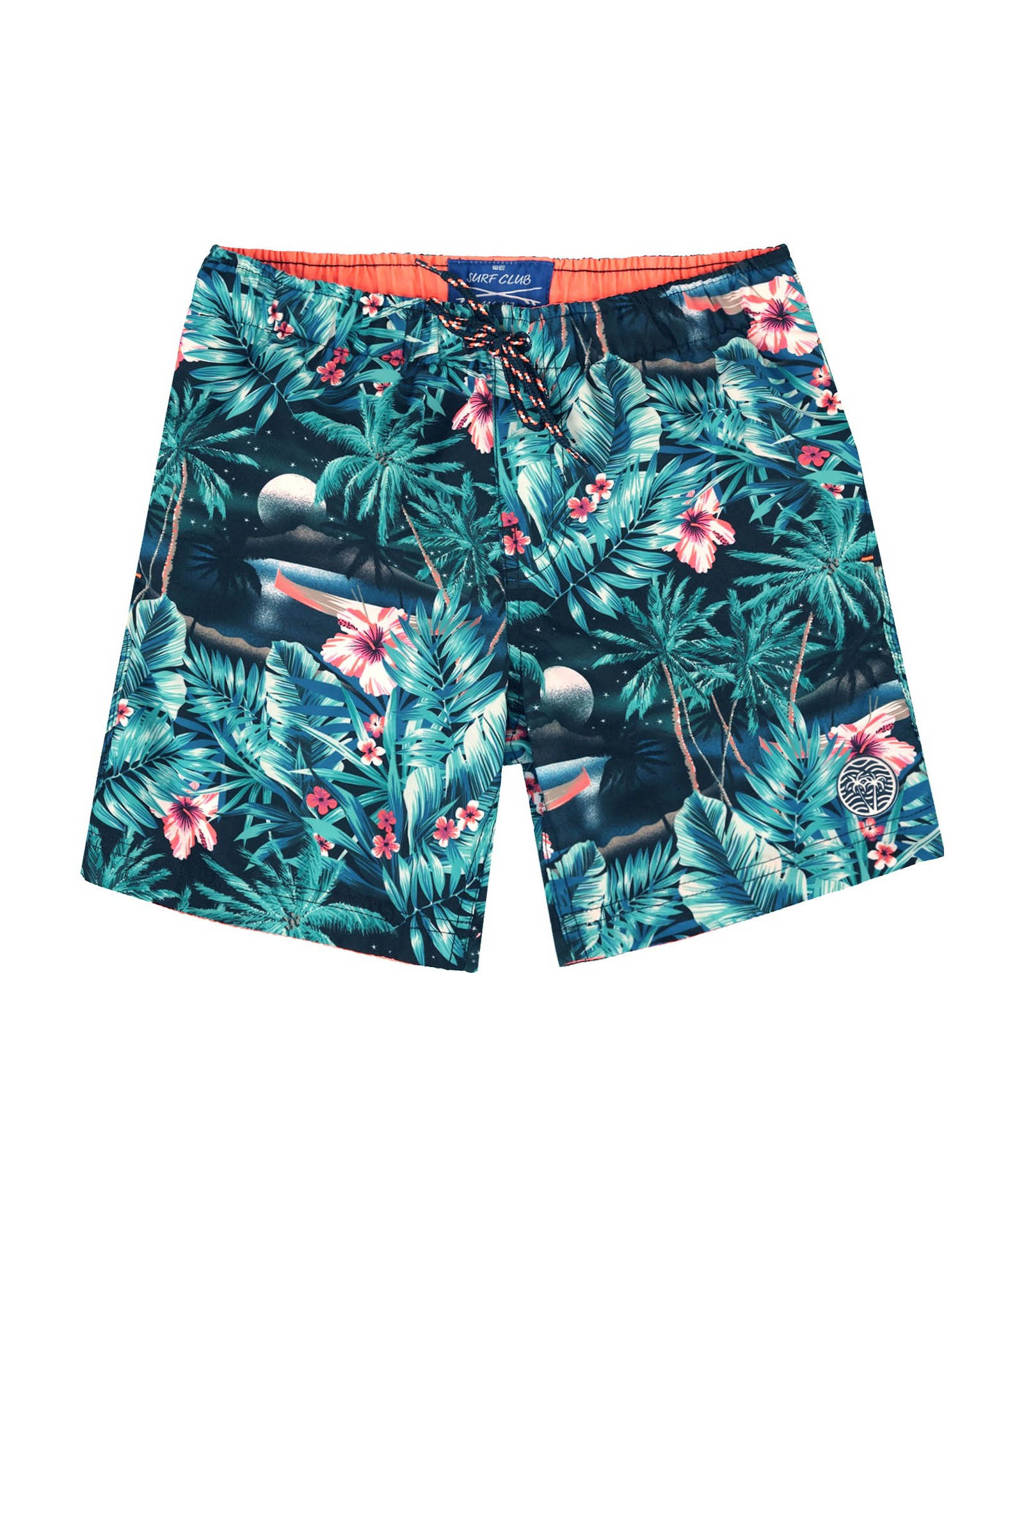 WE Fashion zwemshort met all over print blauw, Royal Navy